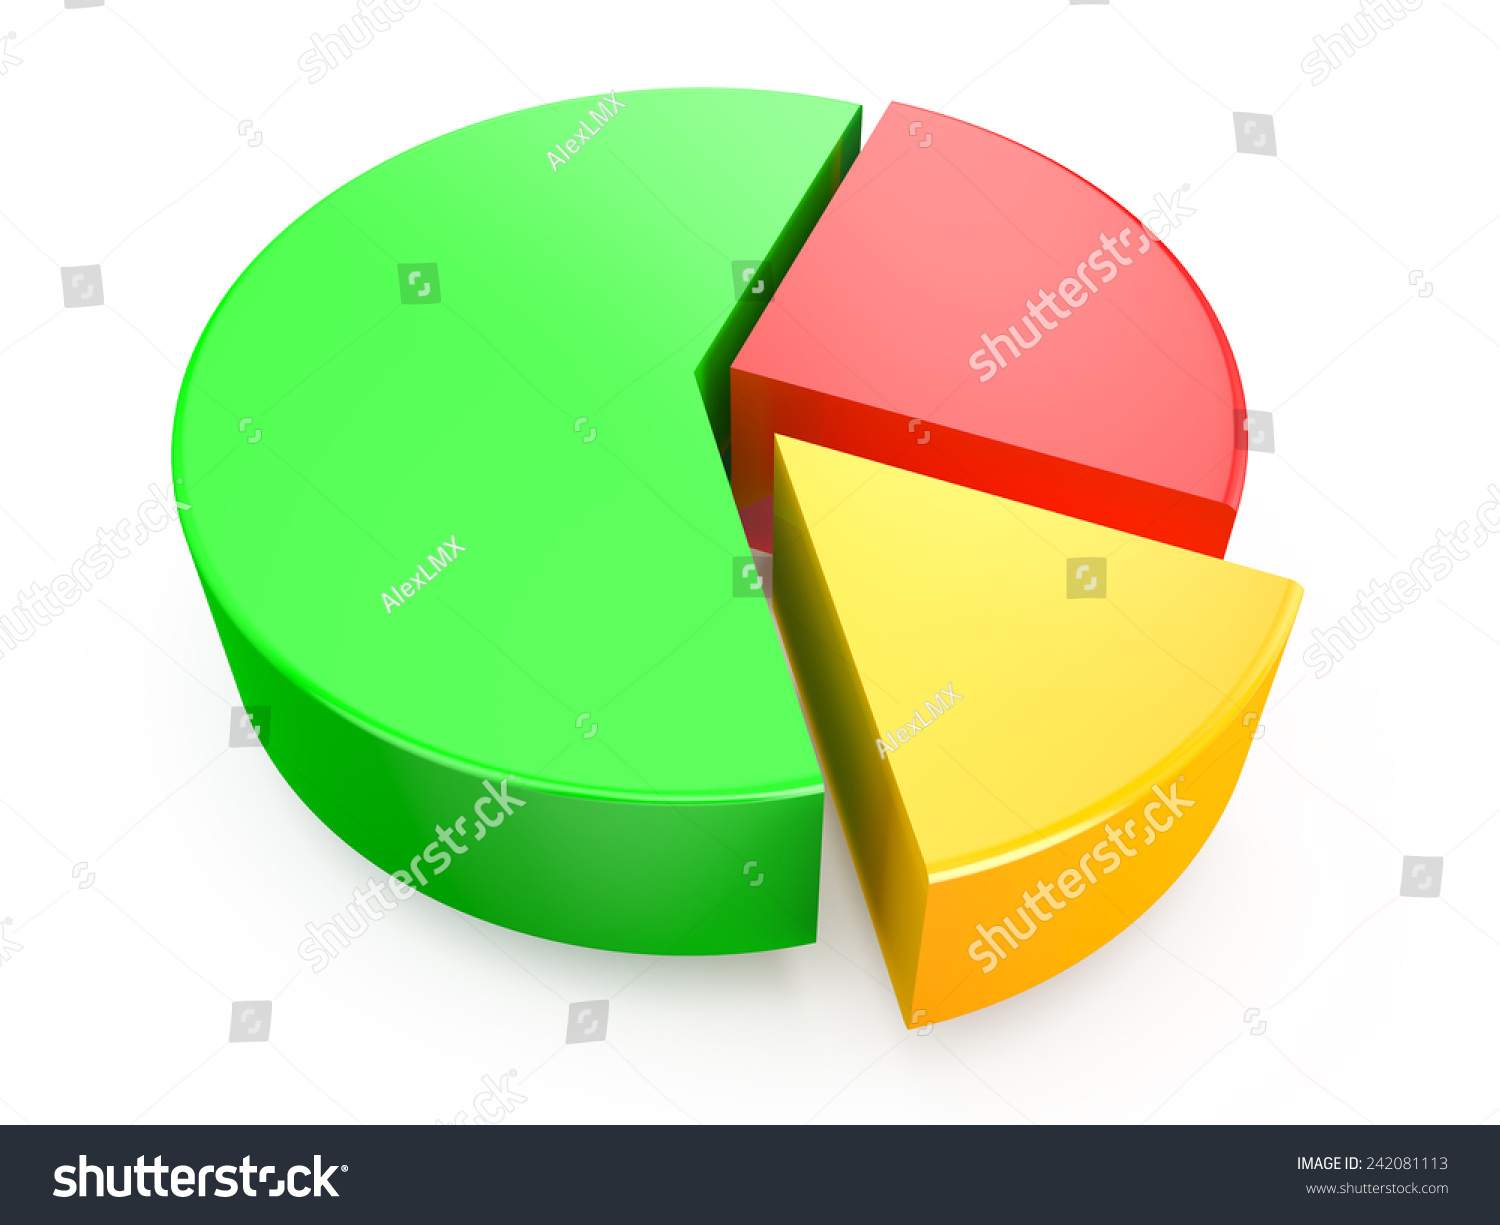 Colour pie chart images free any chart examples colour pie chart images free any chart examples color pie chart stock illustration 242081113 shutterstock color nvjuhfo Image collections